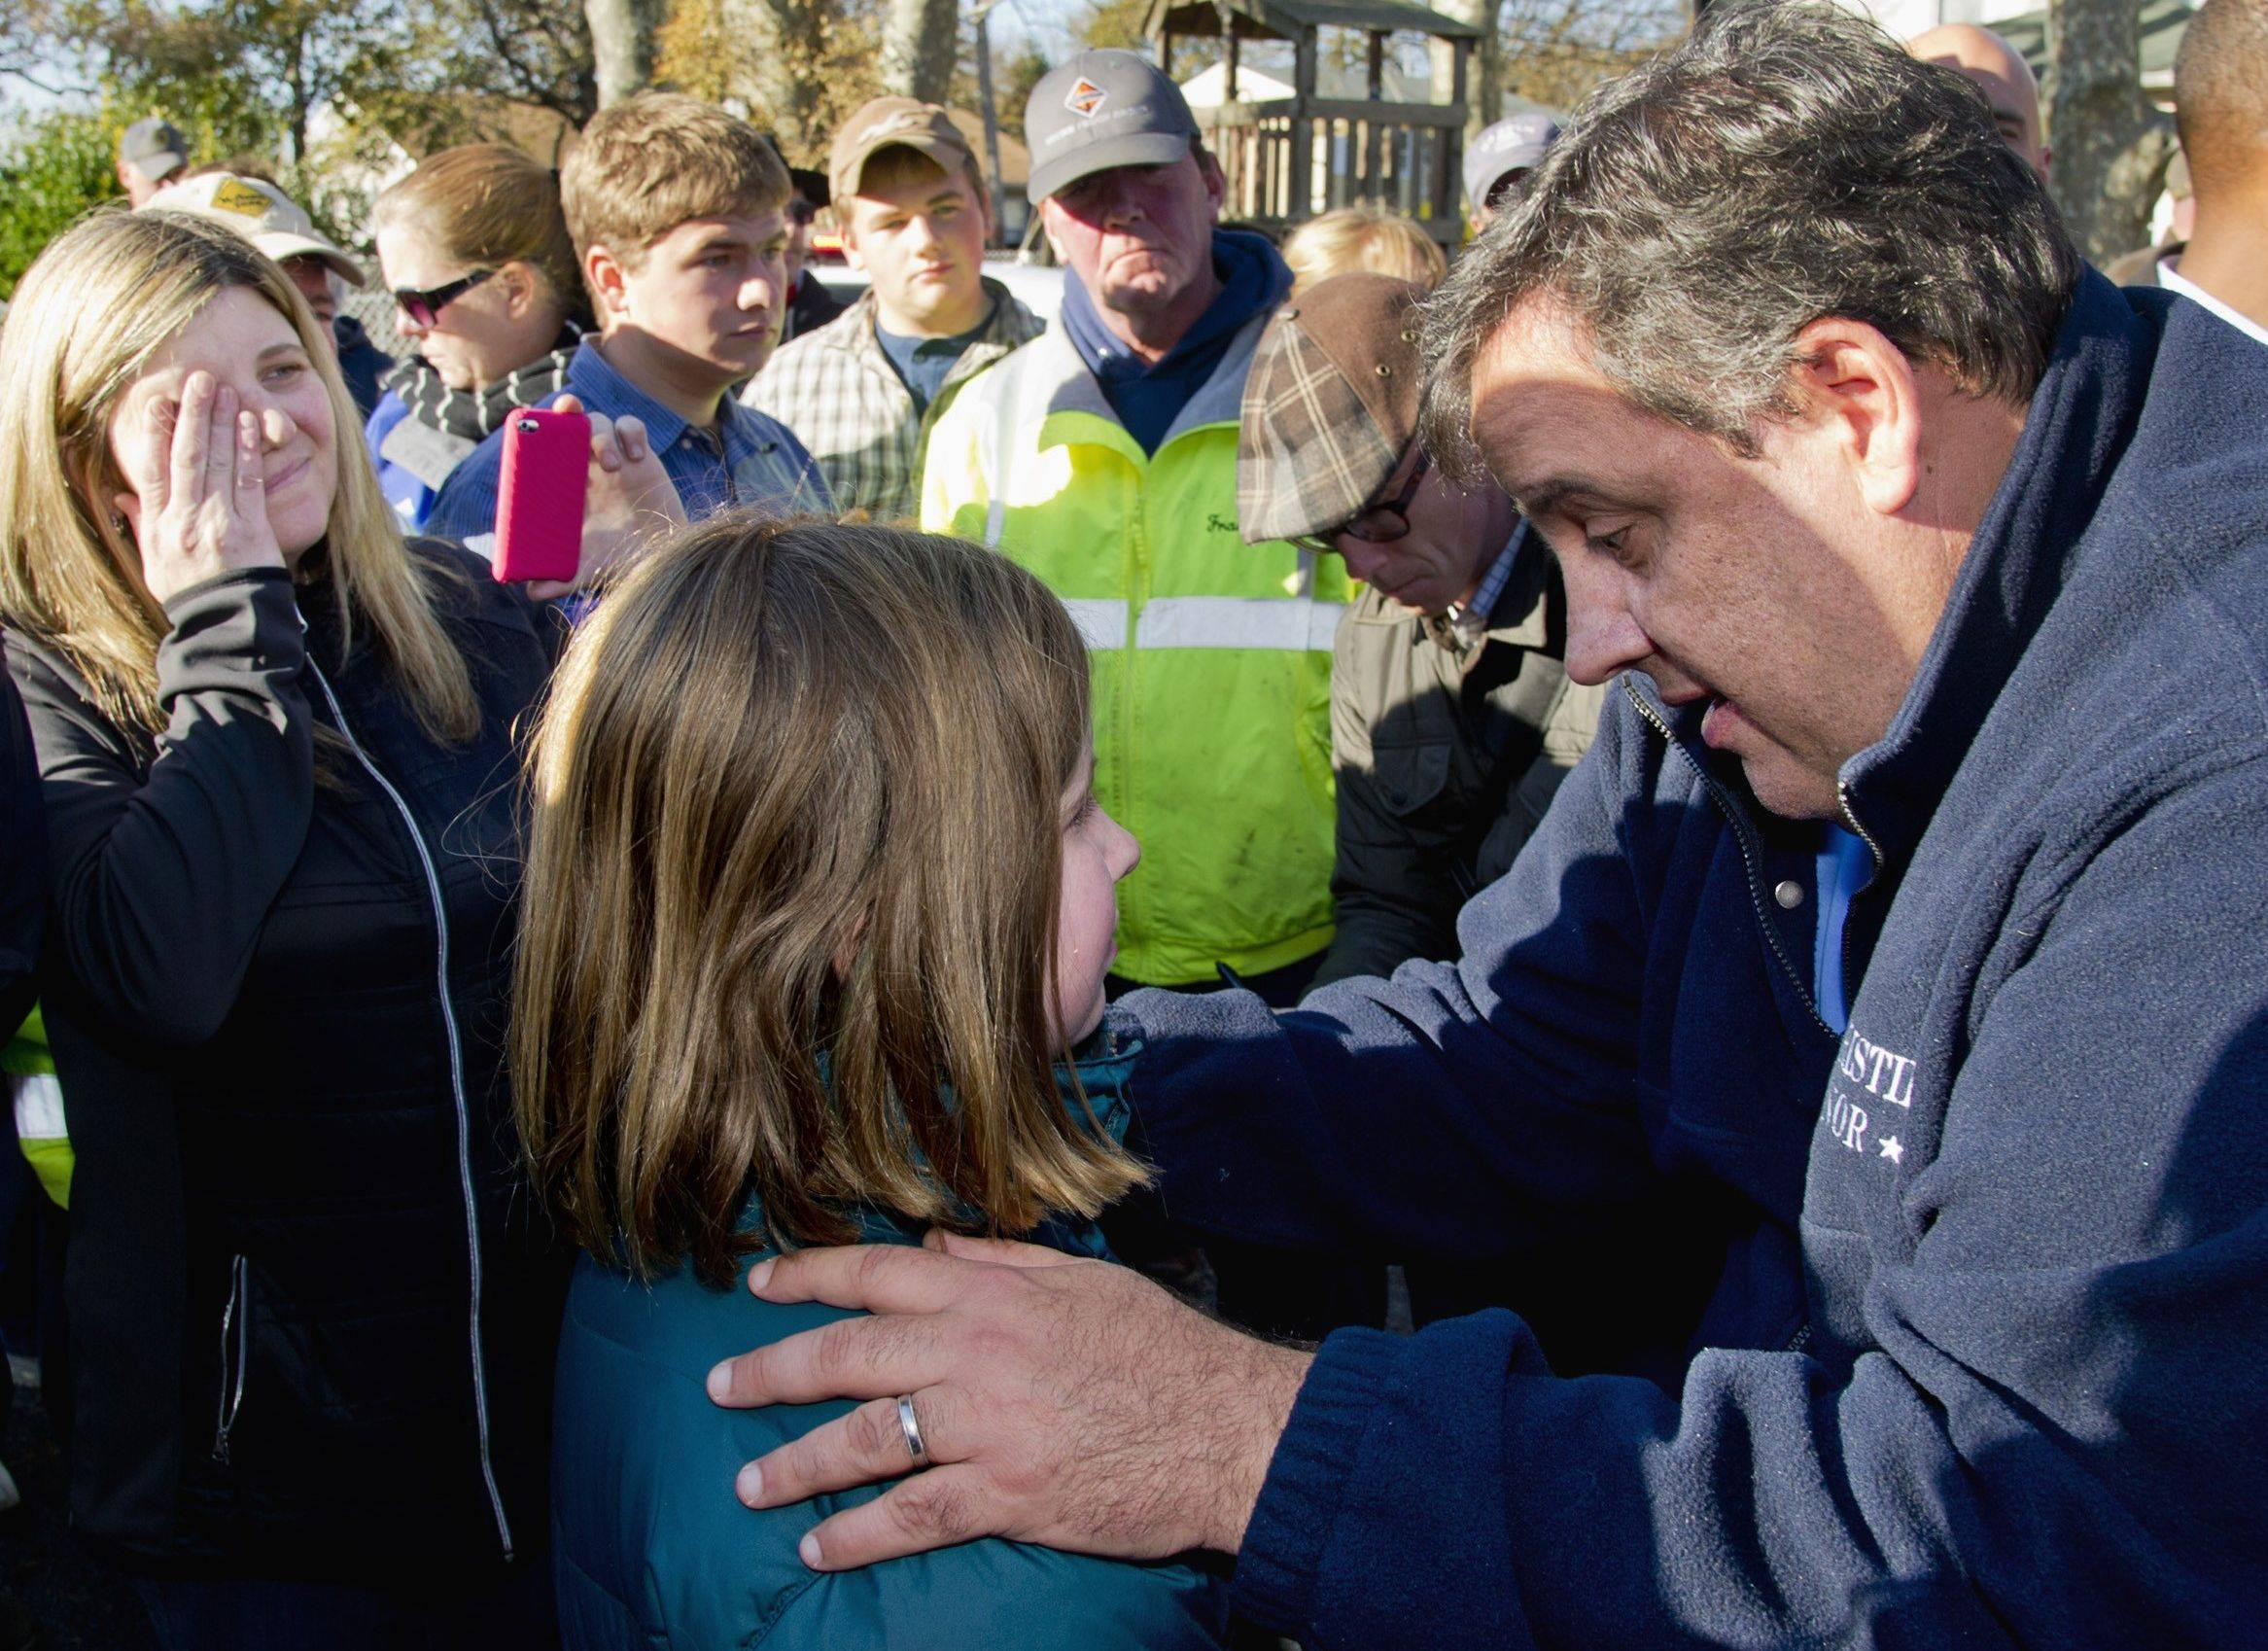 New Jersey Gov. Chris Christie gives 9-year-old Ginjer Doherty a pep talk outside in Port Monmouth, N.J., where he visited residents and first responders Nov. 5, a week after Superstorm Sandy devastated New Jersey.